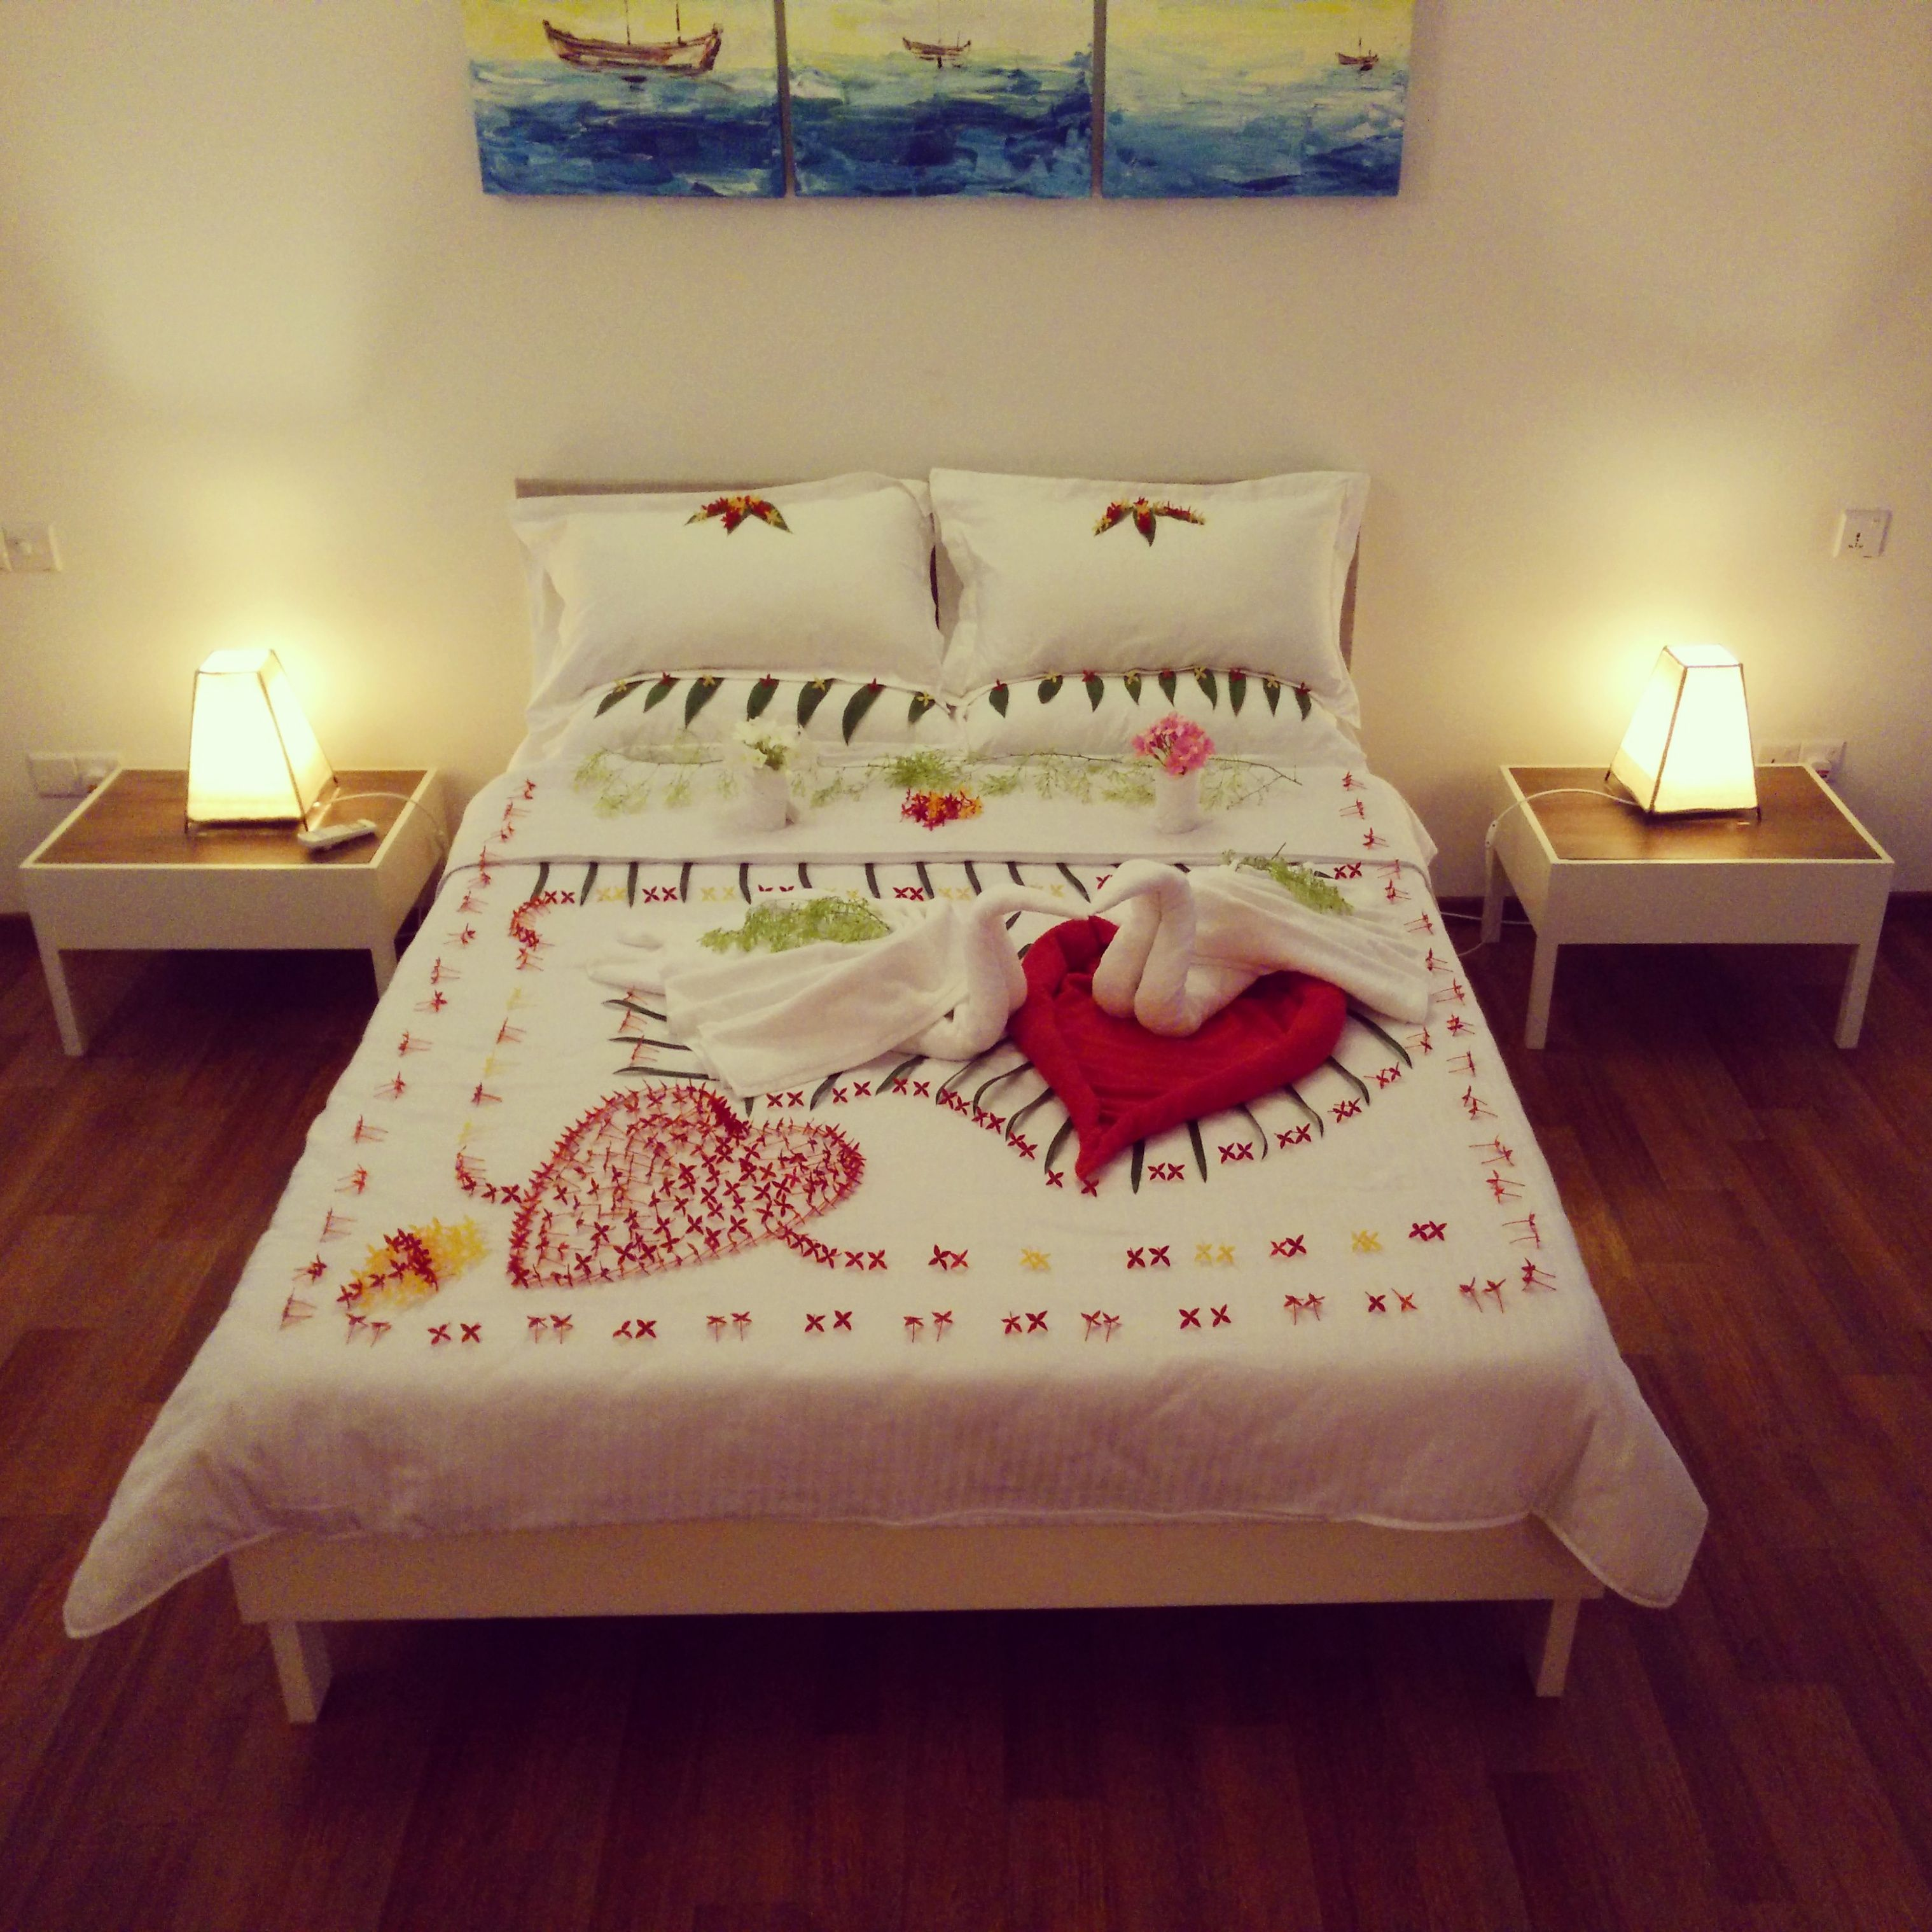 Bed Decorations flower bed decoration for honeymoon #maldives #laamu #romantic